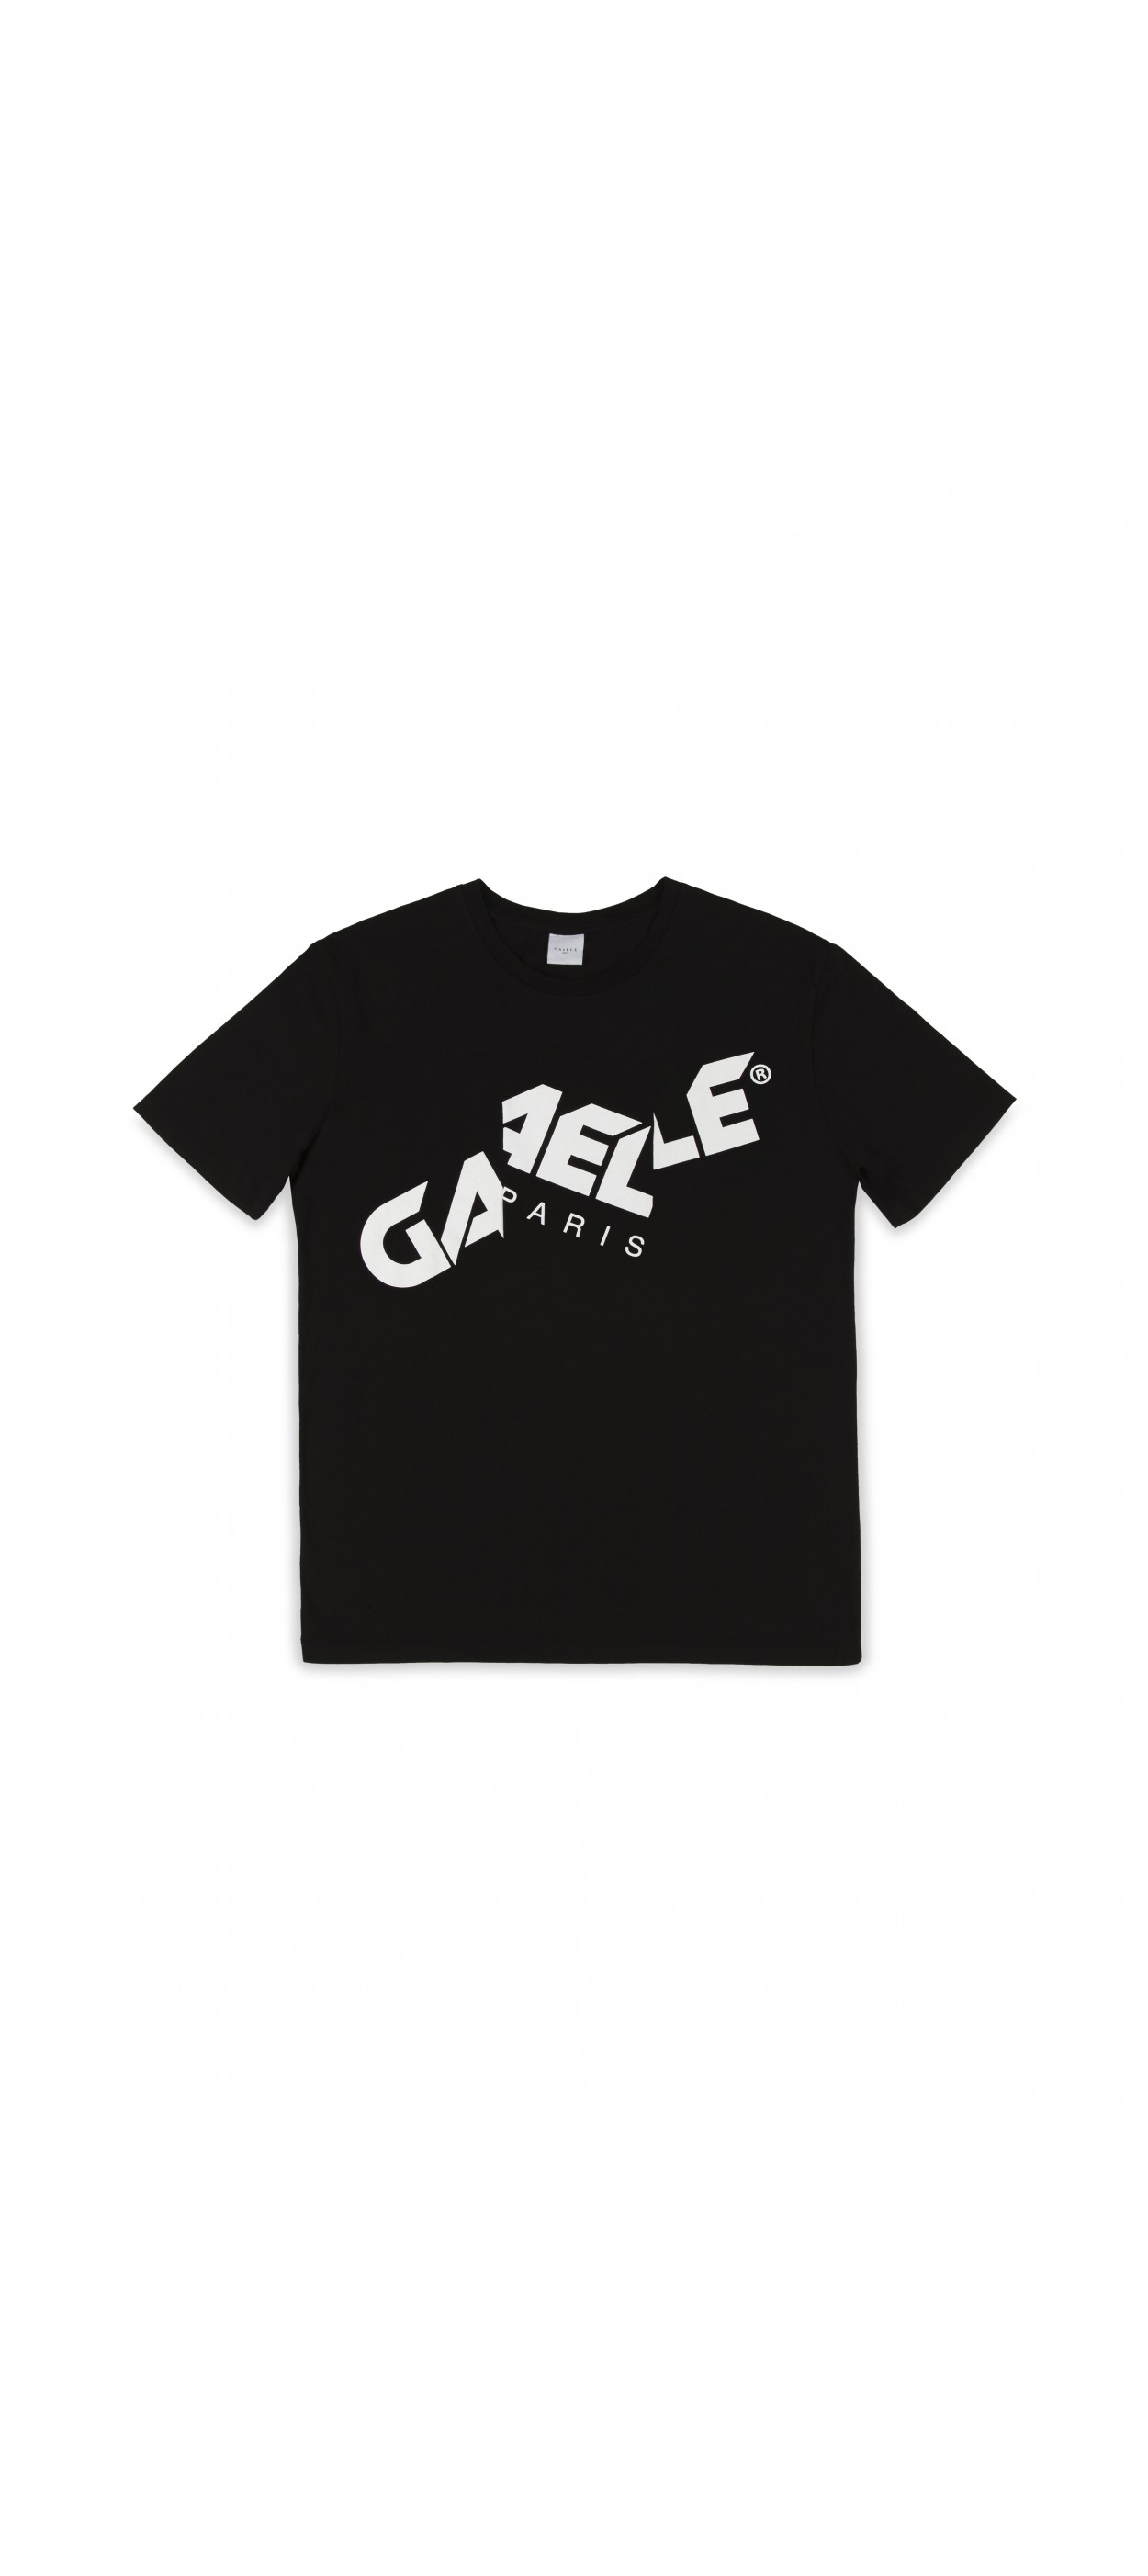 T-SHIRT - GBU2164 - GAELLE PARIS